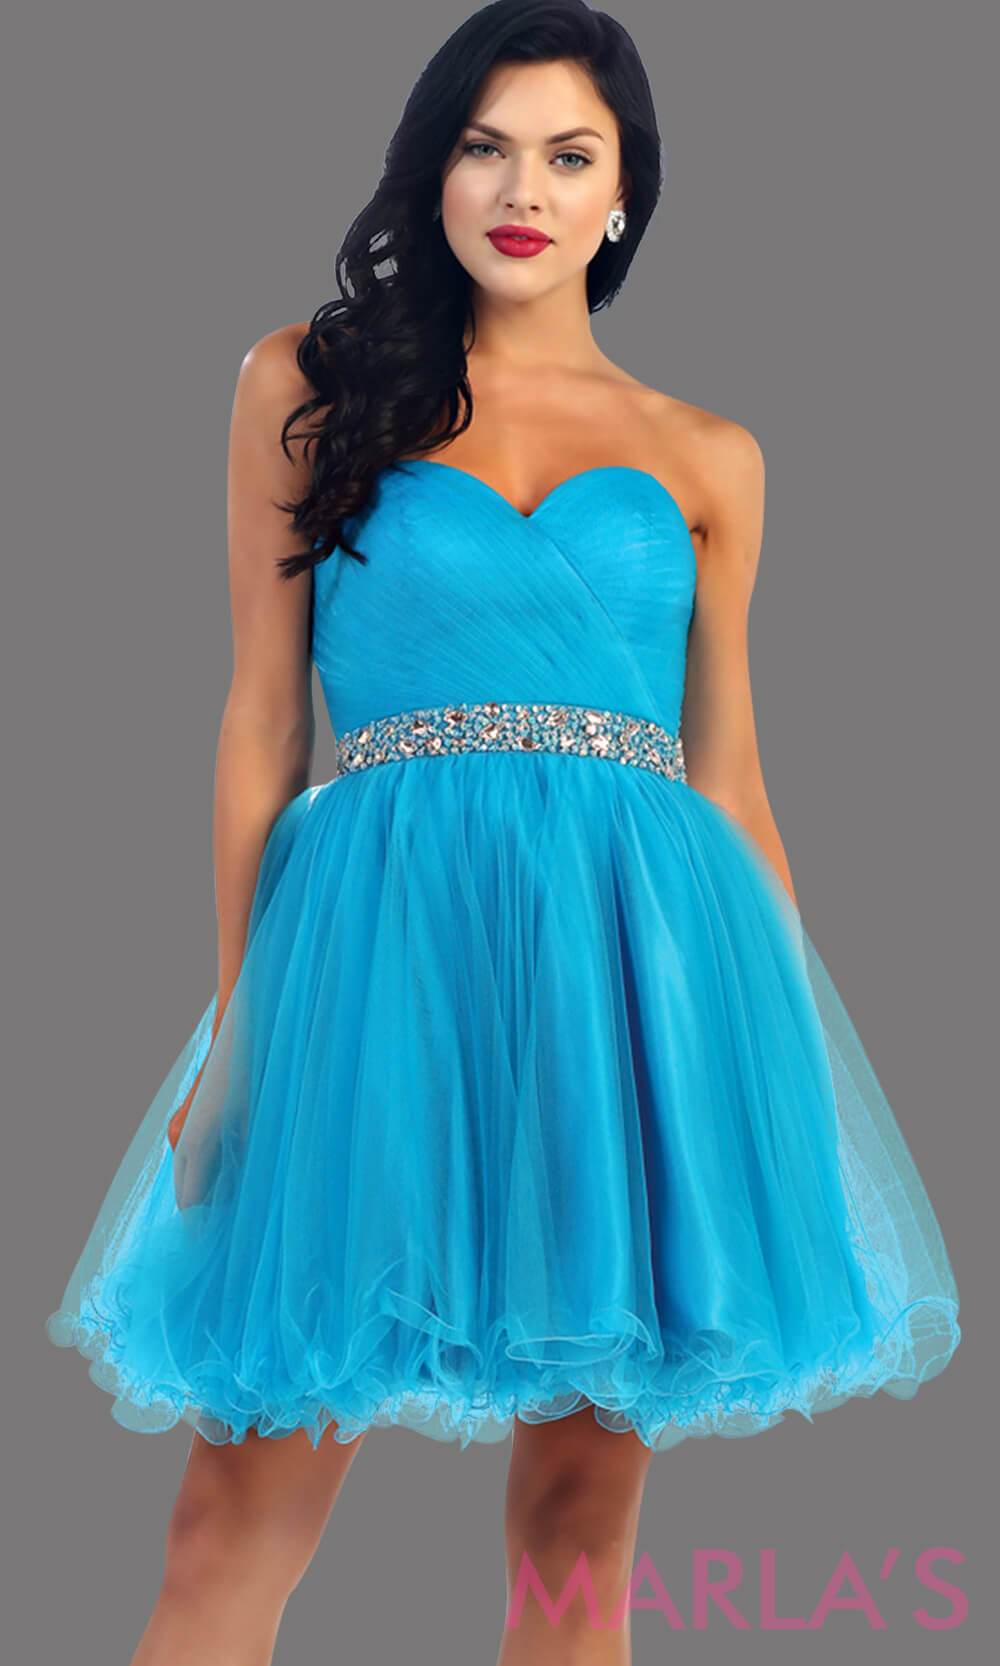 Short strapless puffy turquoise dress with rhinestone belt. It has a corset back. This is a perfect light blue grade 8 graduation dress, blue damas dress, or sweet 16 dress. Available in plus sizes